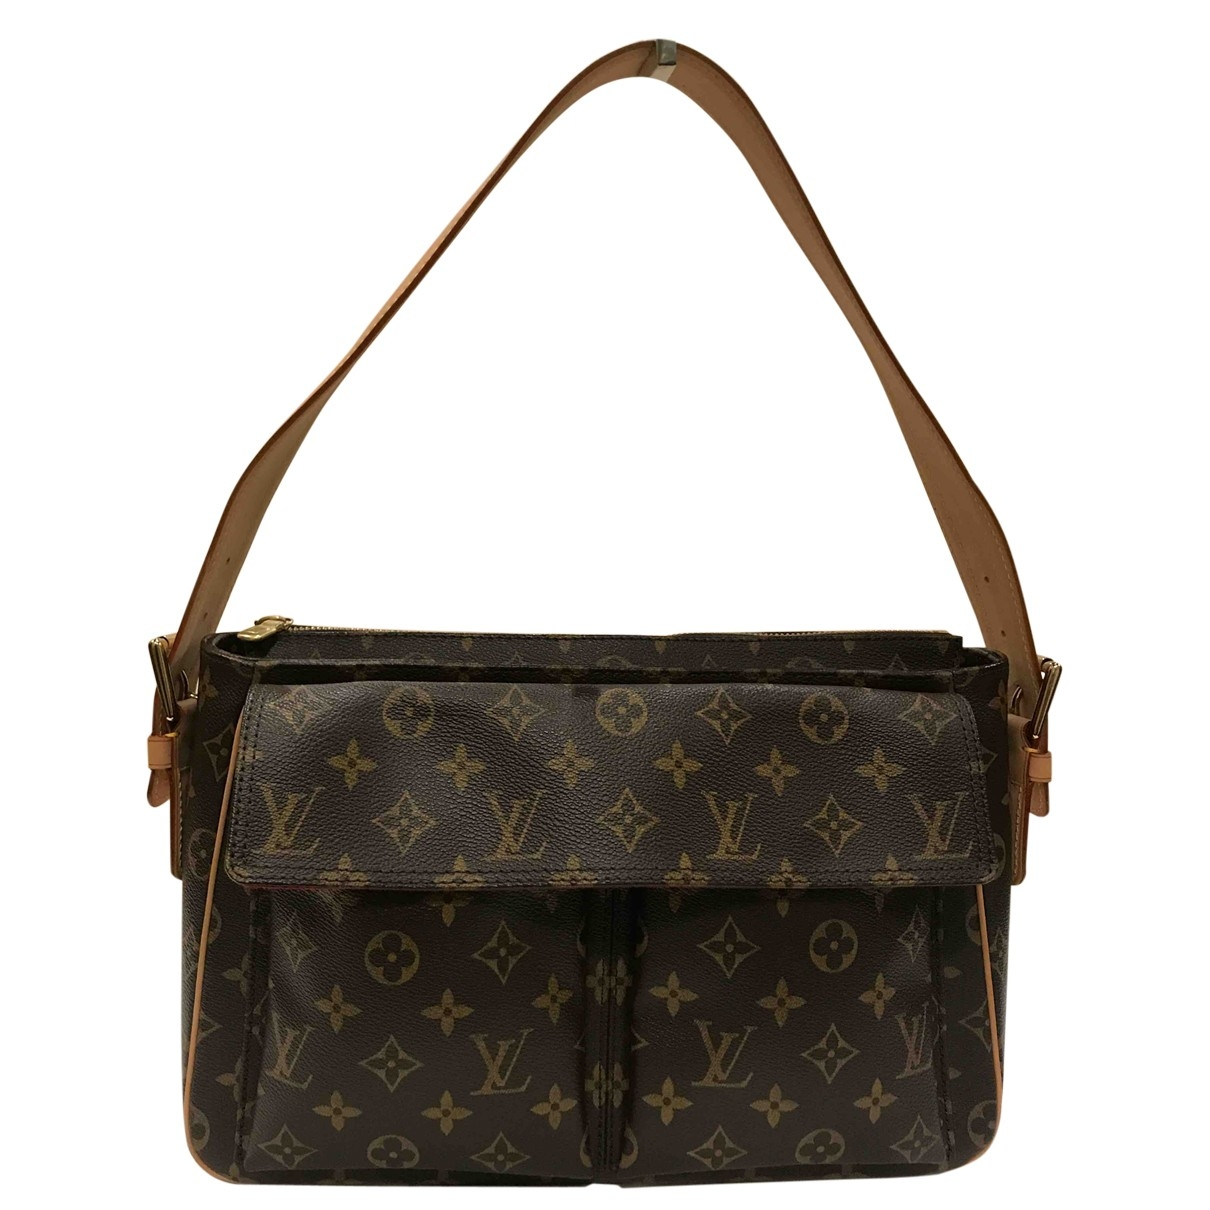 Louis Vuitton Viva Cite Handtasche in  Braun Leinen